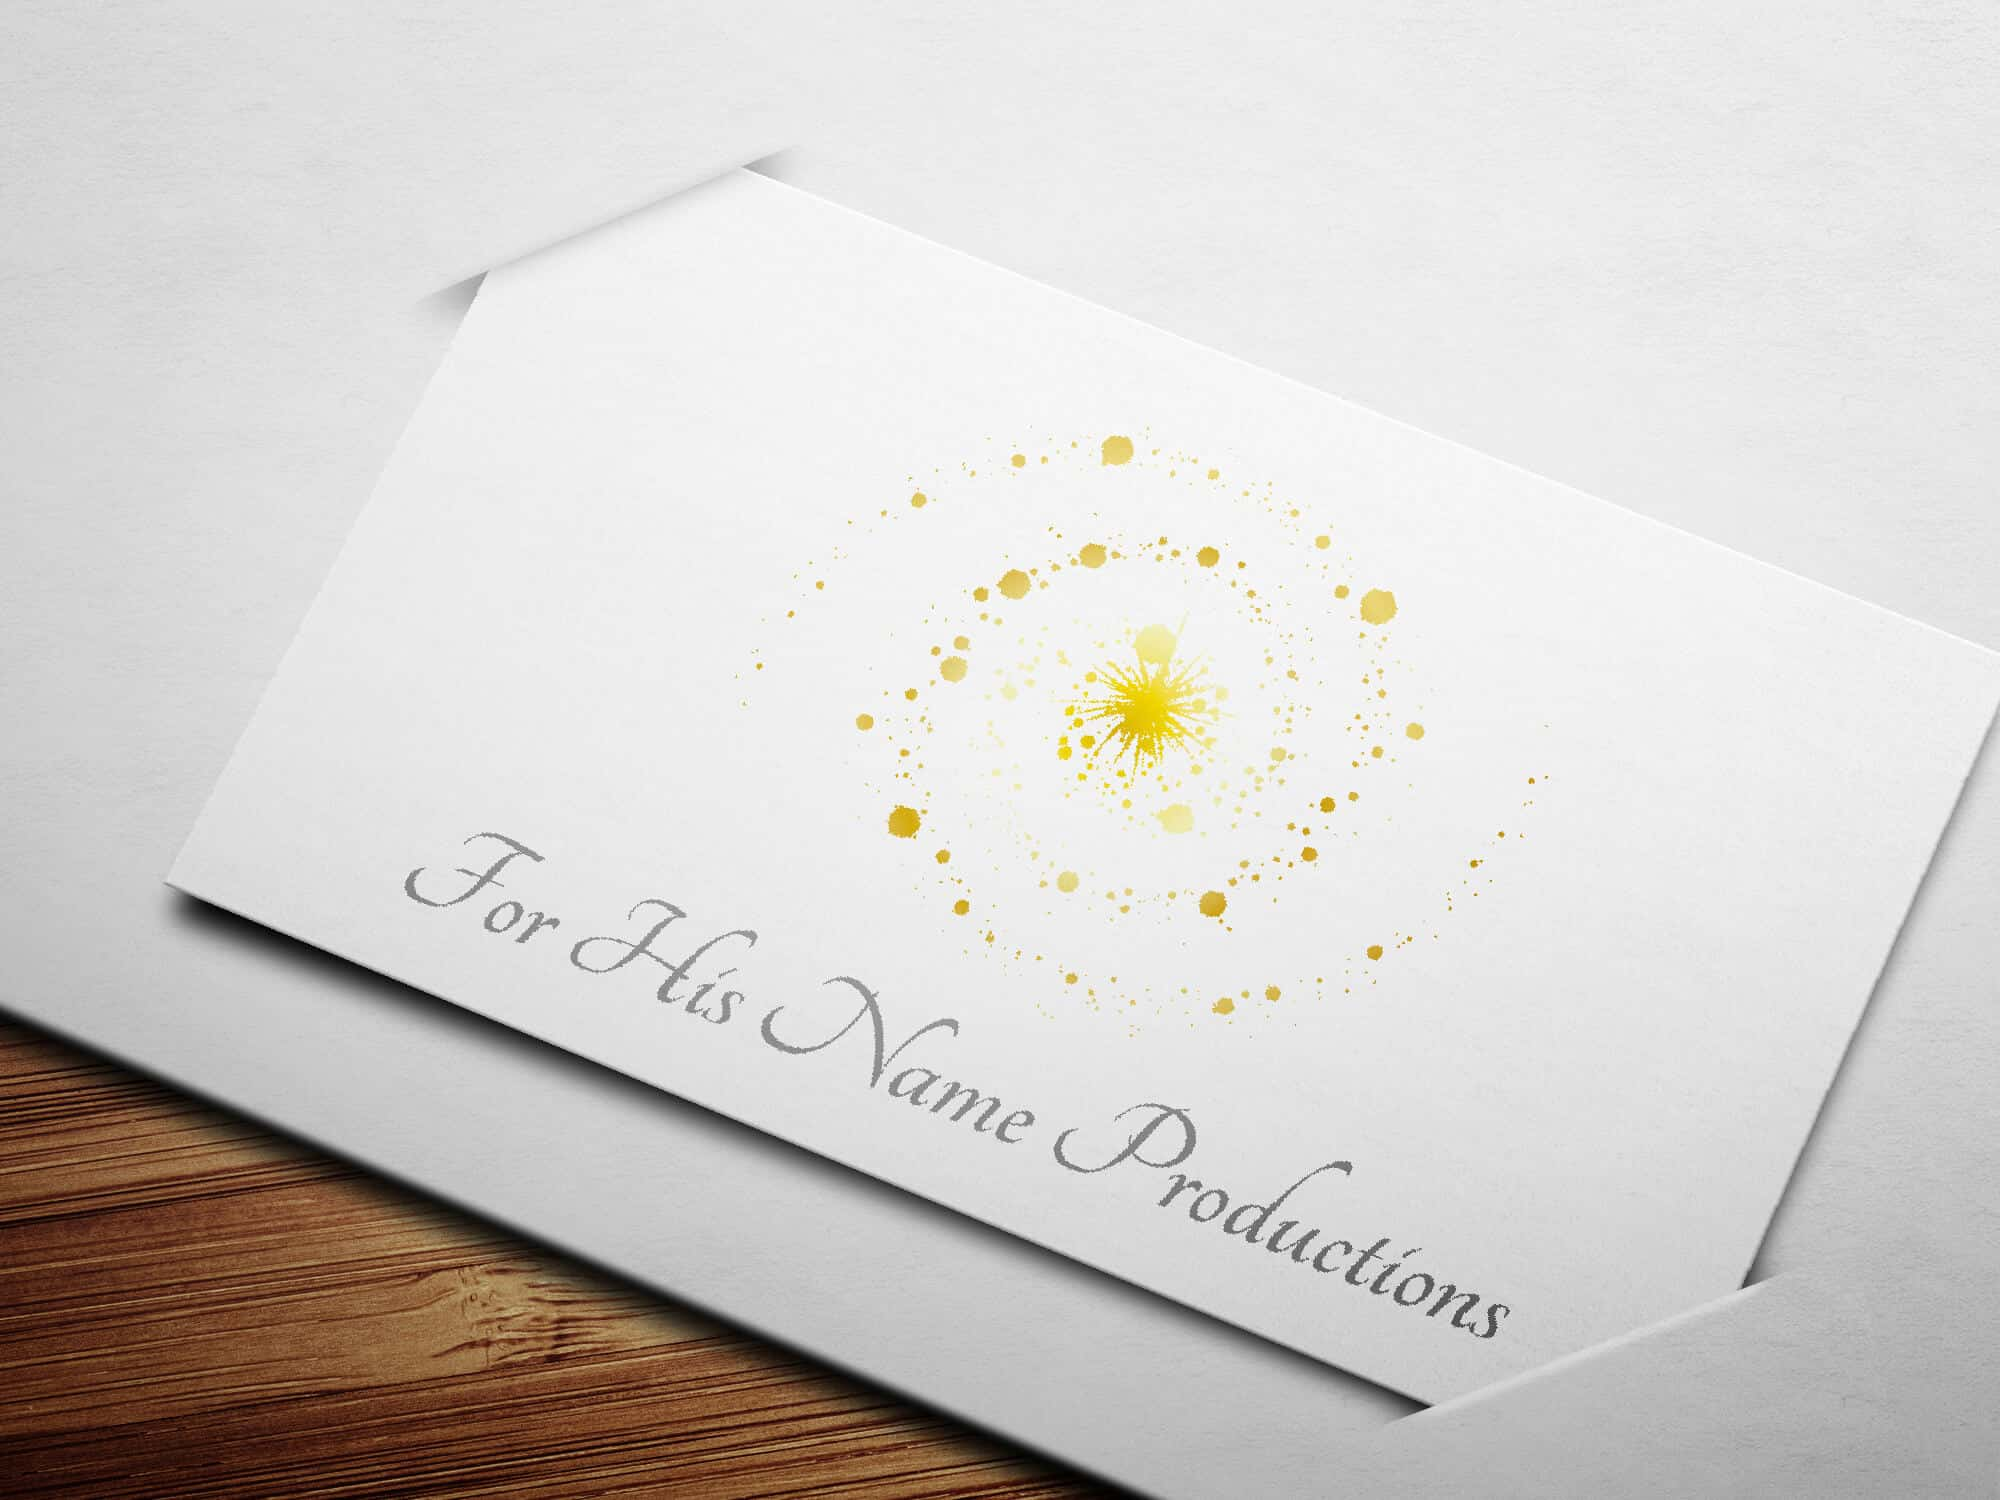 ForHisNameProductions_Logo_Design_Mockup_By_UziMedia